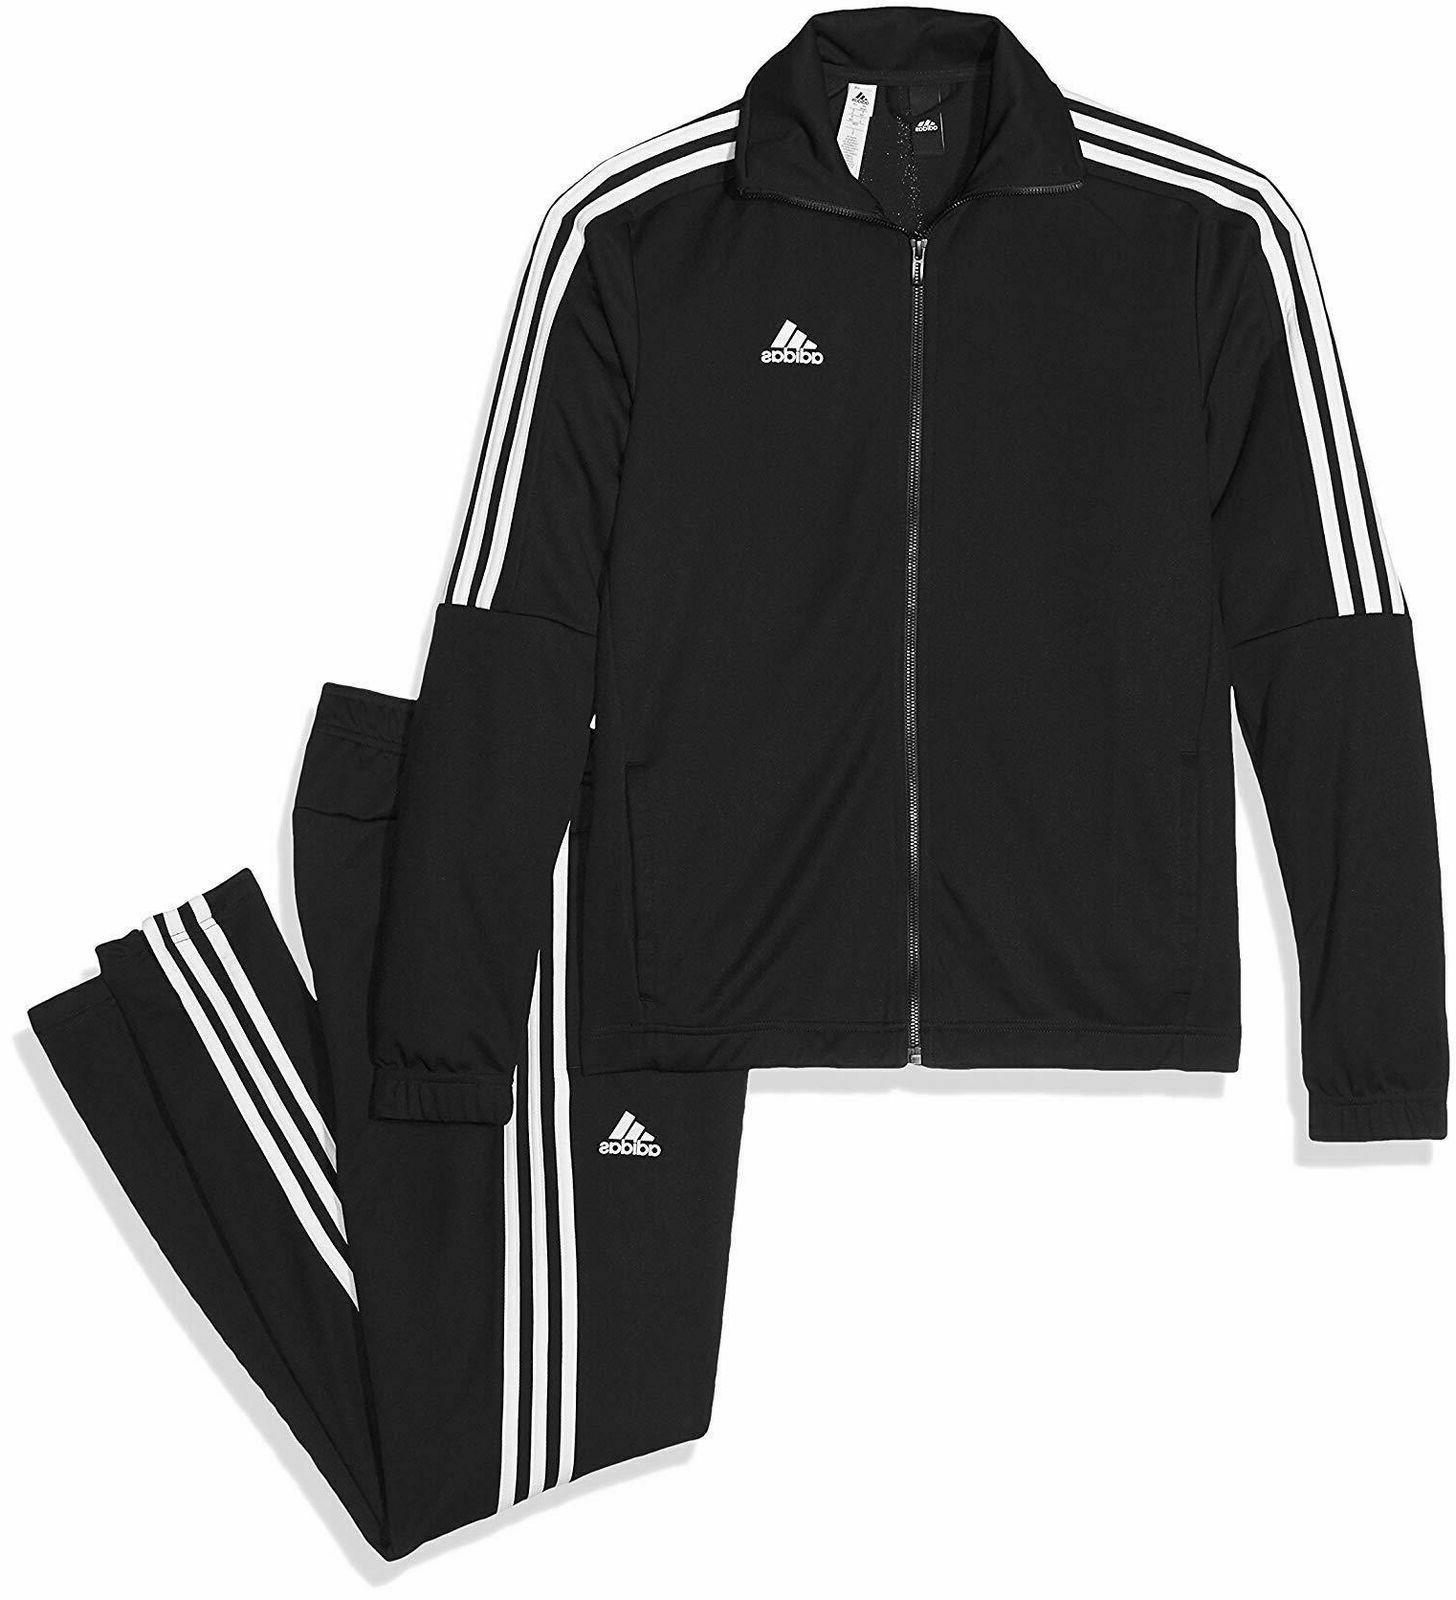 tiro track suit jacket top pants black